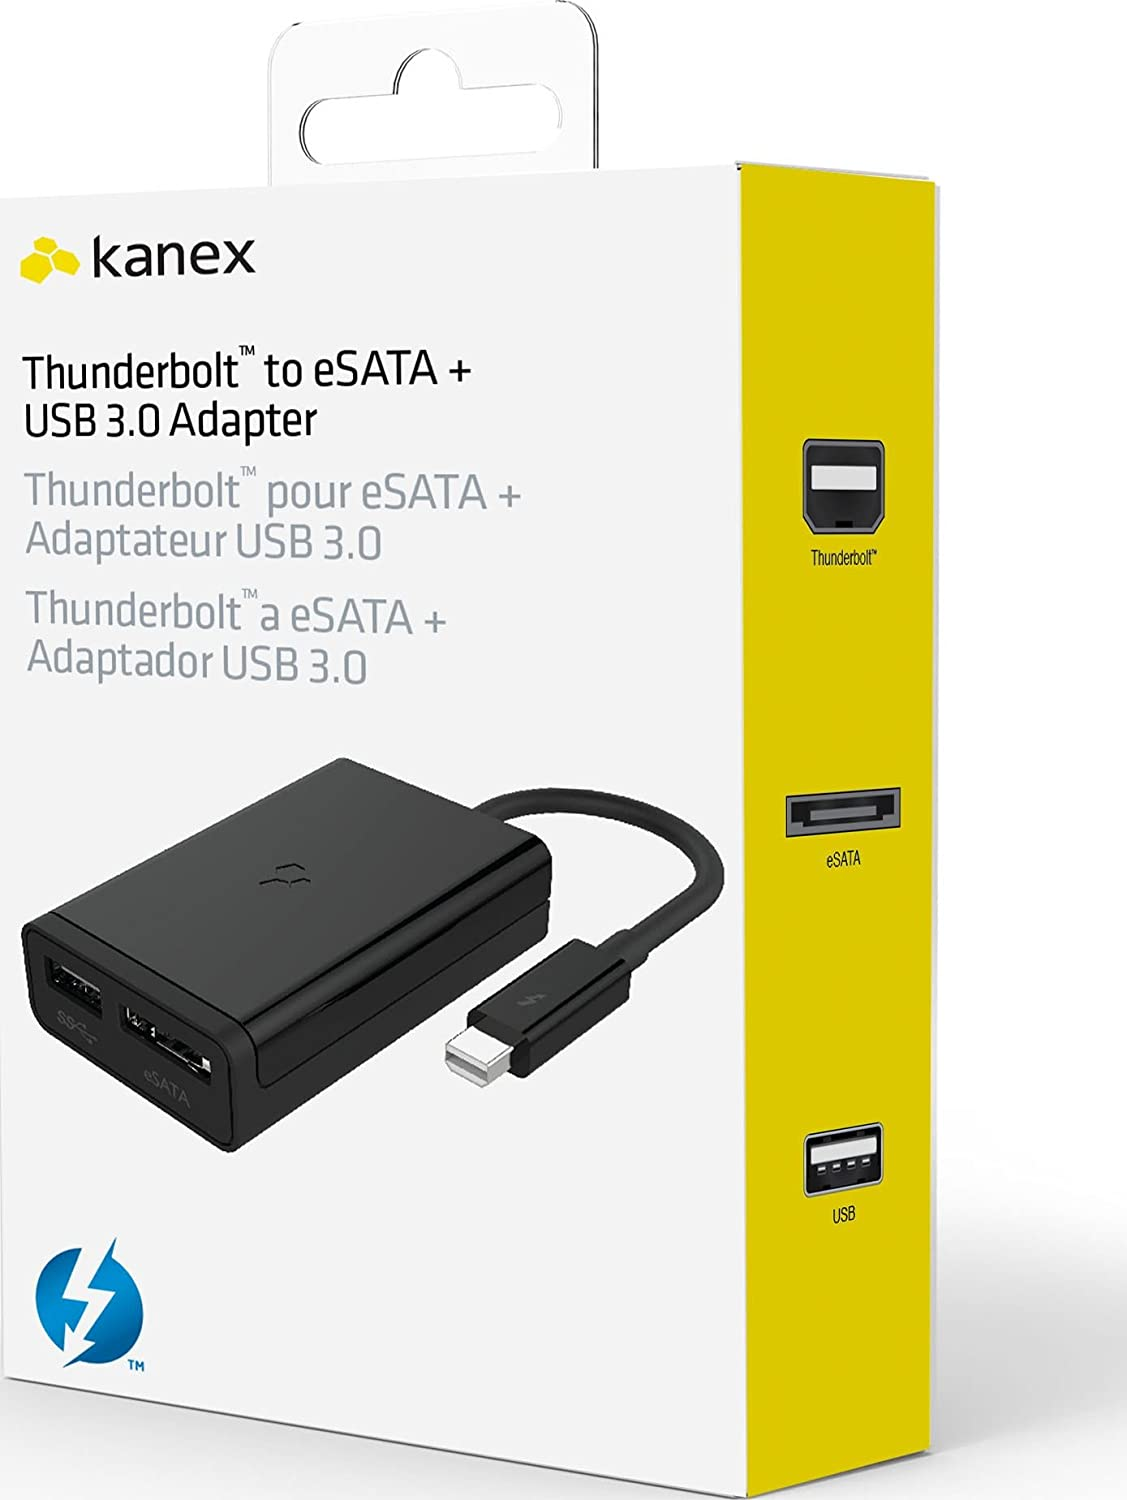 Amazon.com: Kanex Thunderbolt to eSATA plus USB 3.0 Adapter: Home ...